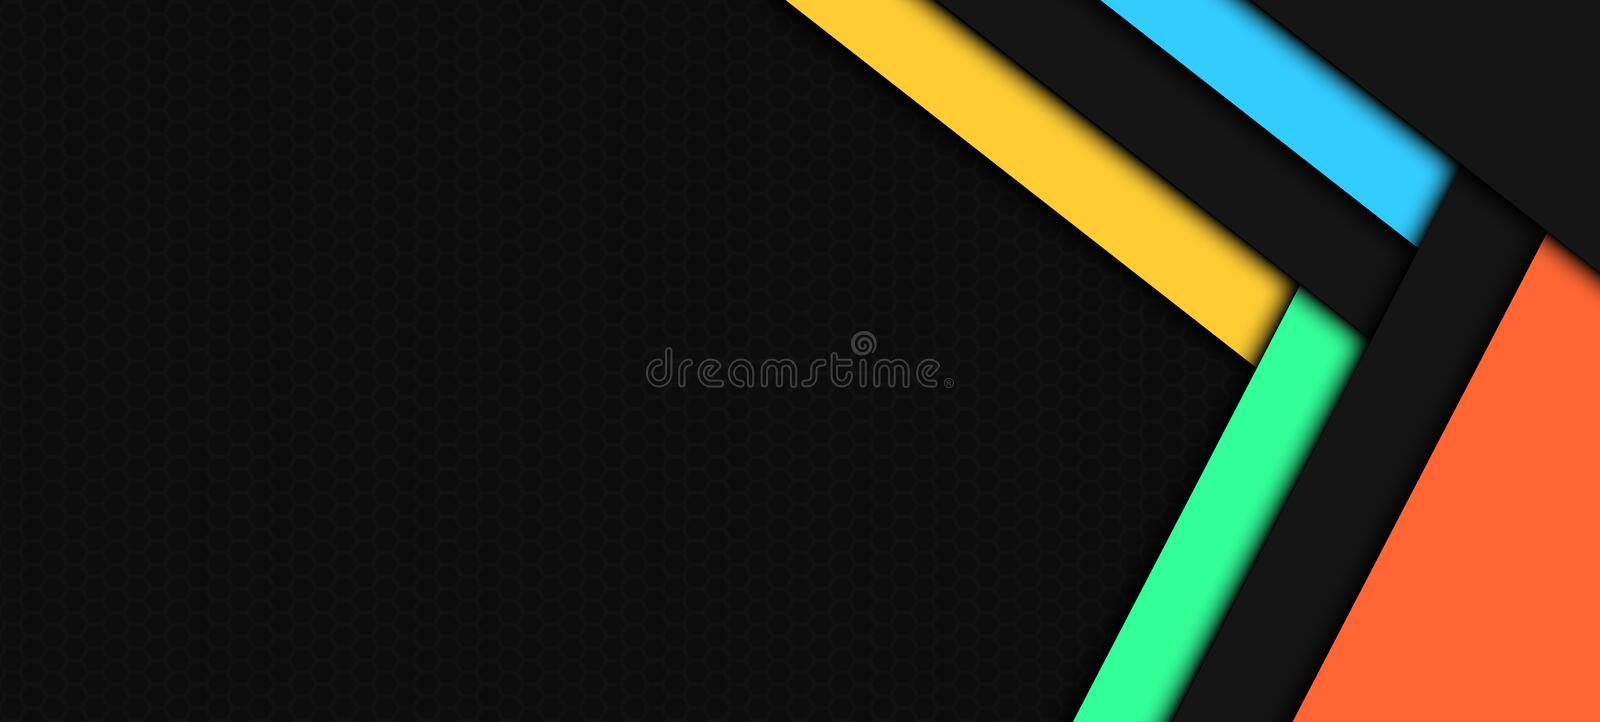 Abstract Background Material Design royalty free stock image